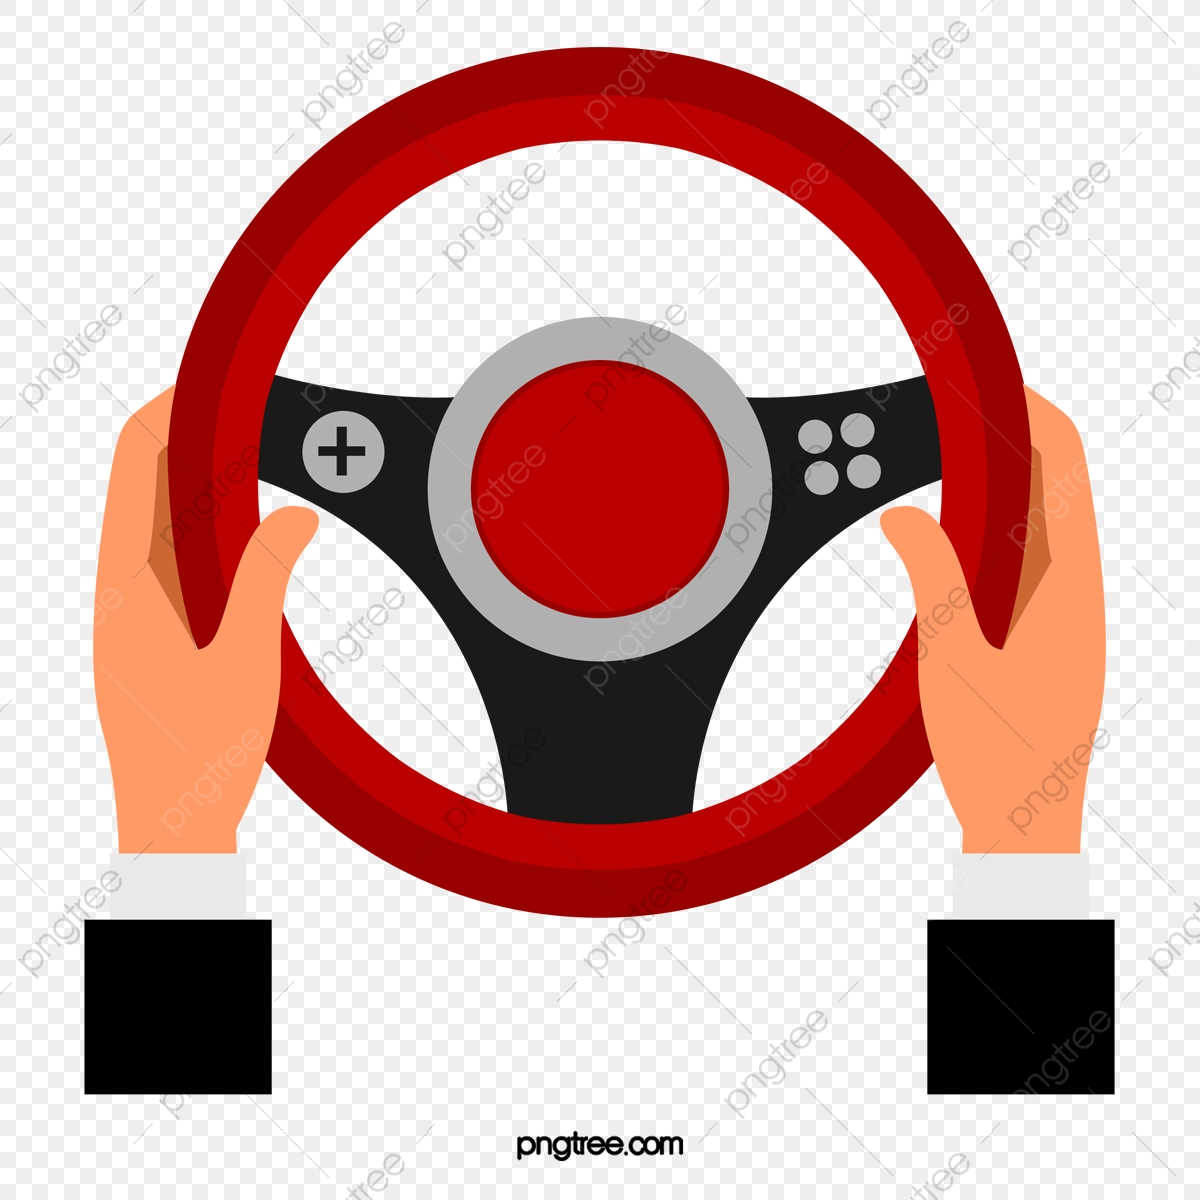 jpg black and white download Hands on steering wheel clipart. Hand vector .